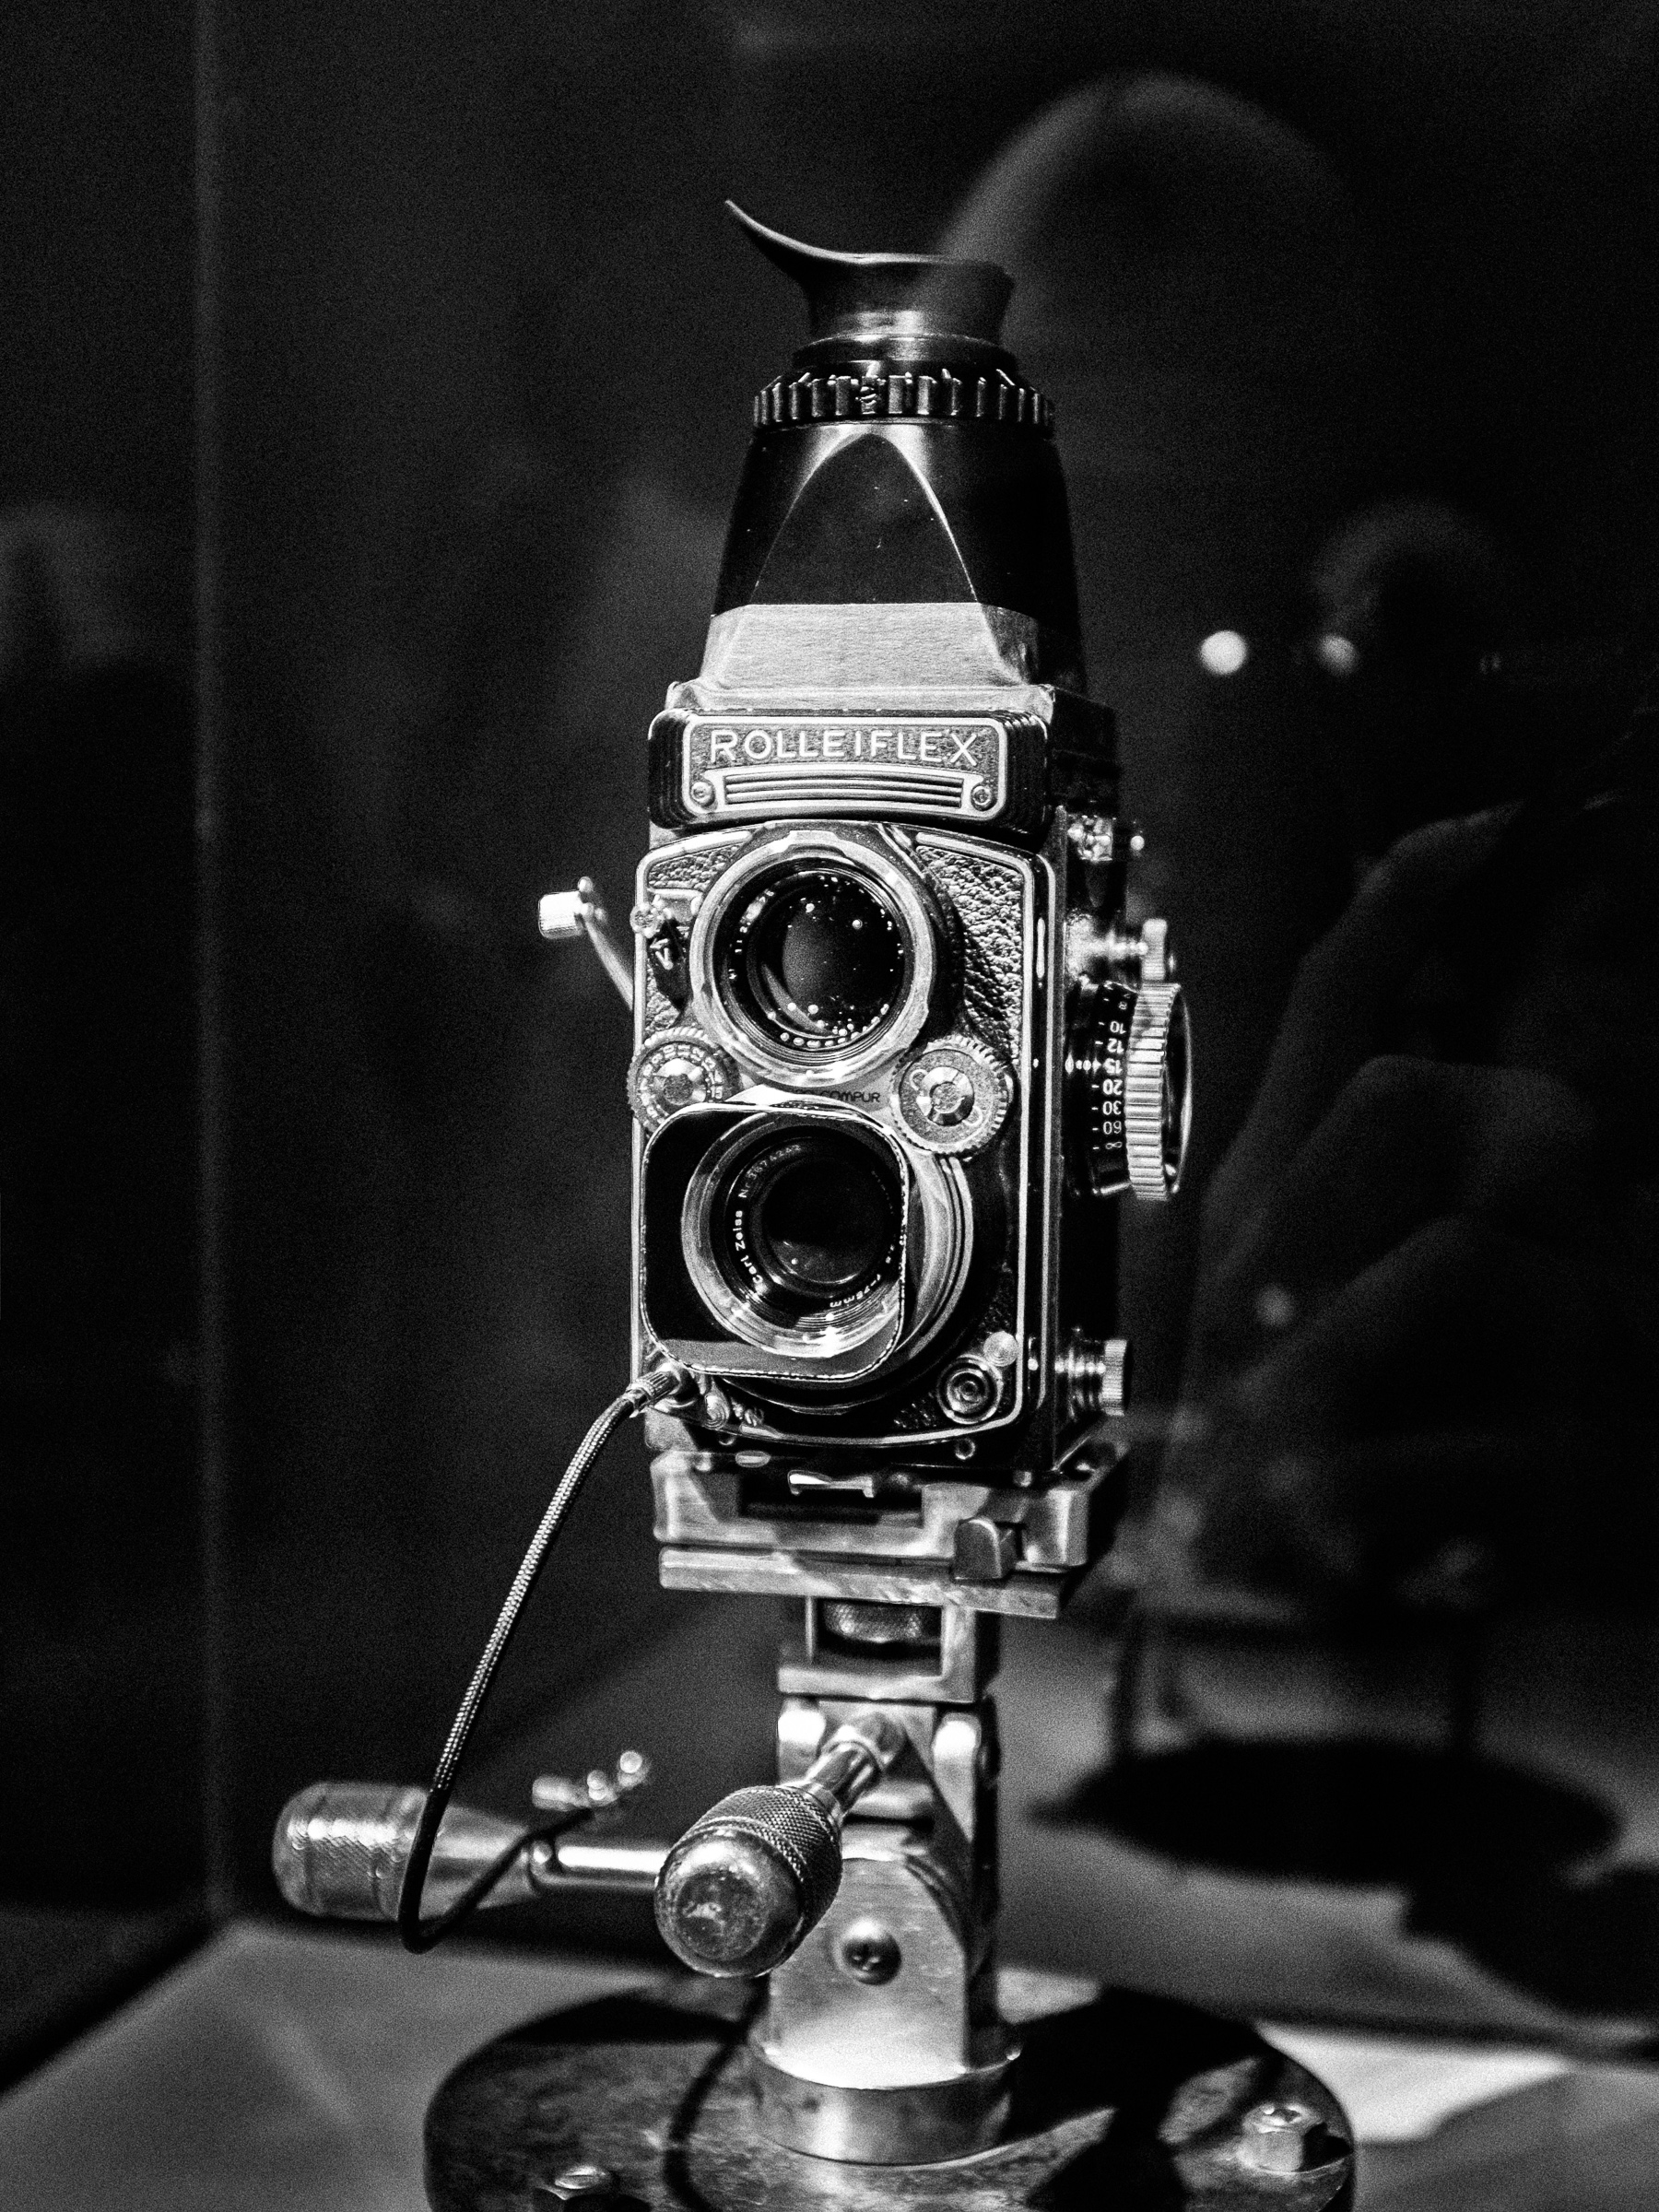 Penn's Rolleiflex camera, on which he shot a vast amount of his work throughout his career.